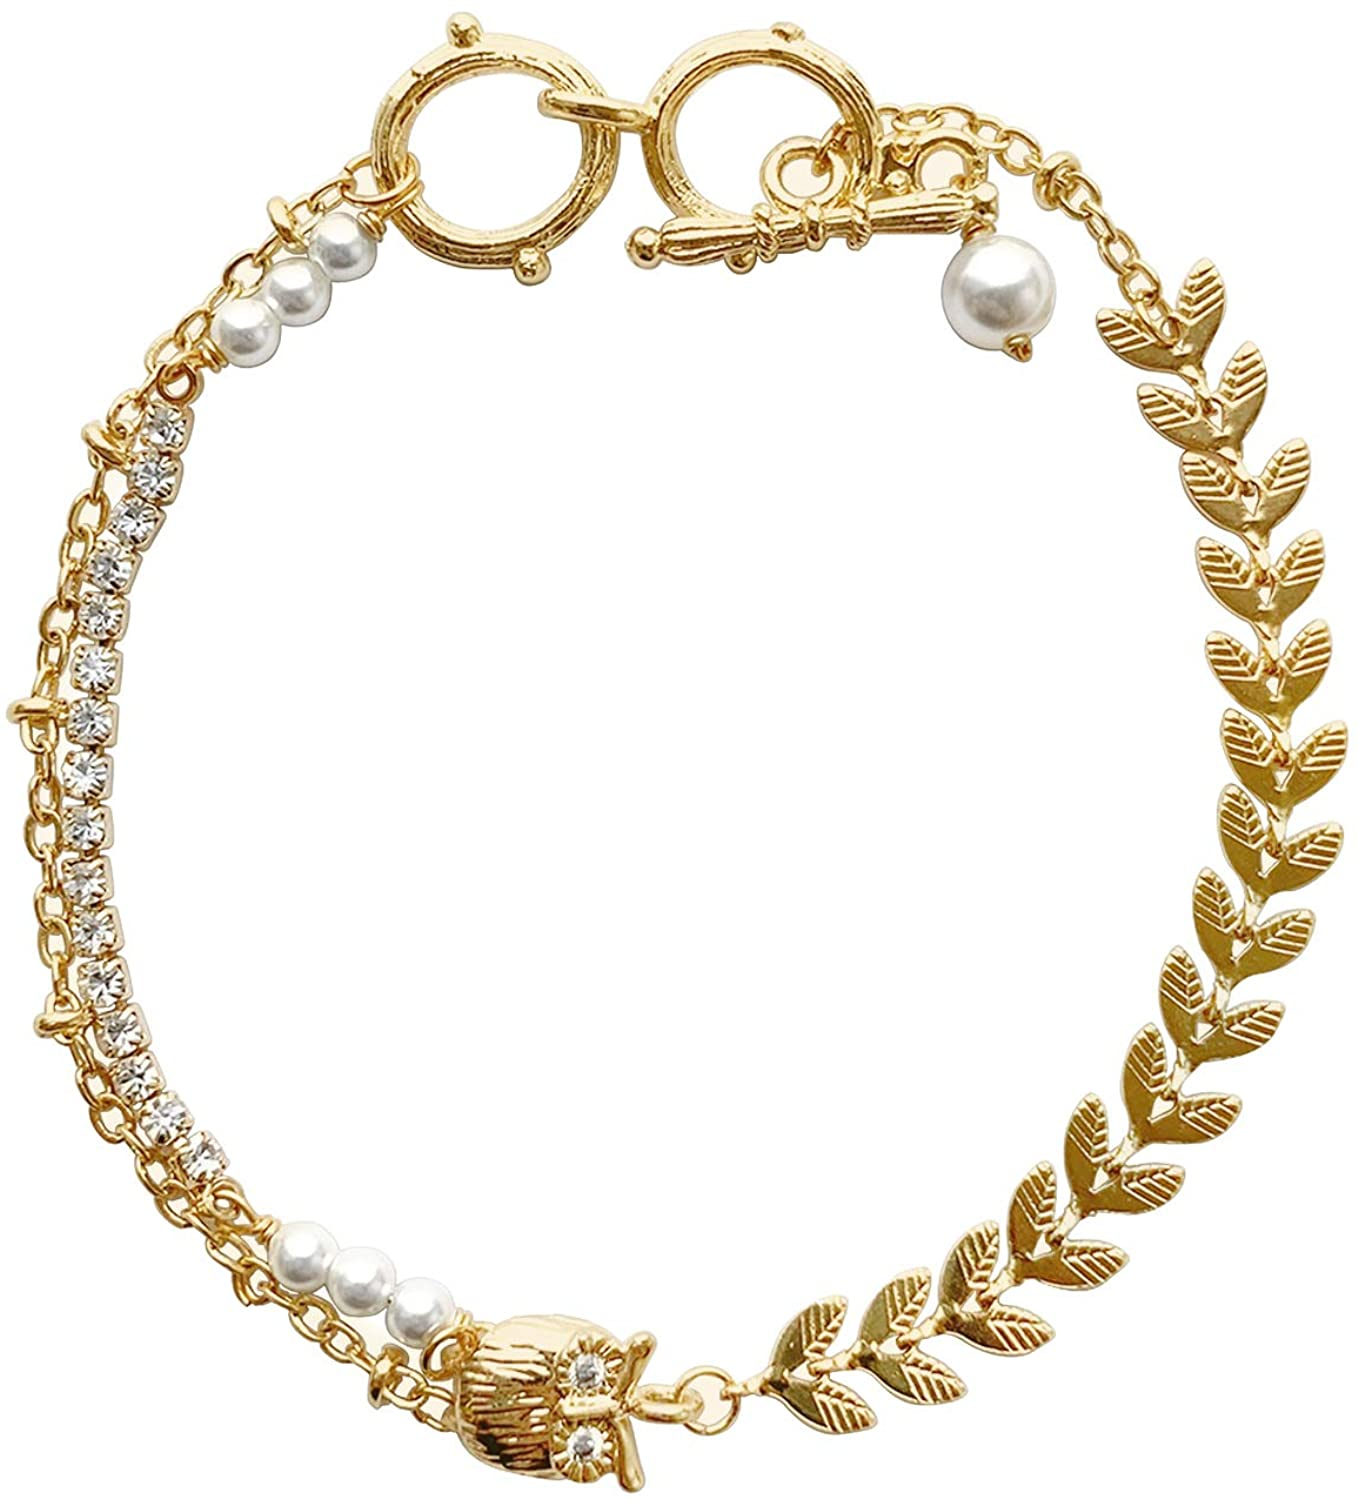 CCijiNG Bracelet Classic for Women Unique Design Bracelet Jewelry Gifts,Pearls Bracelet,Gold Plated Brass Bracelet Gifts for Valentine Day